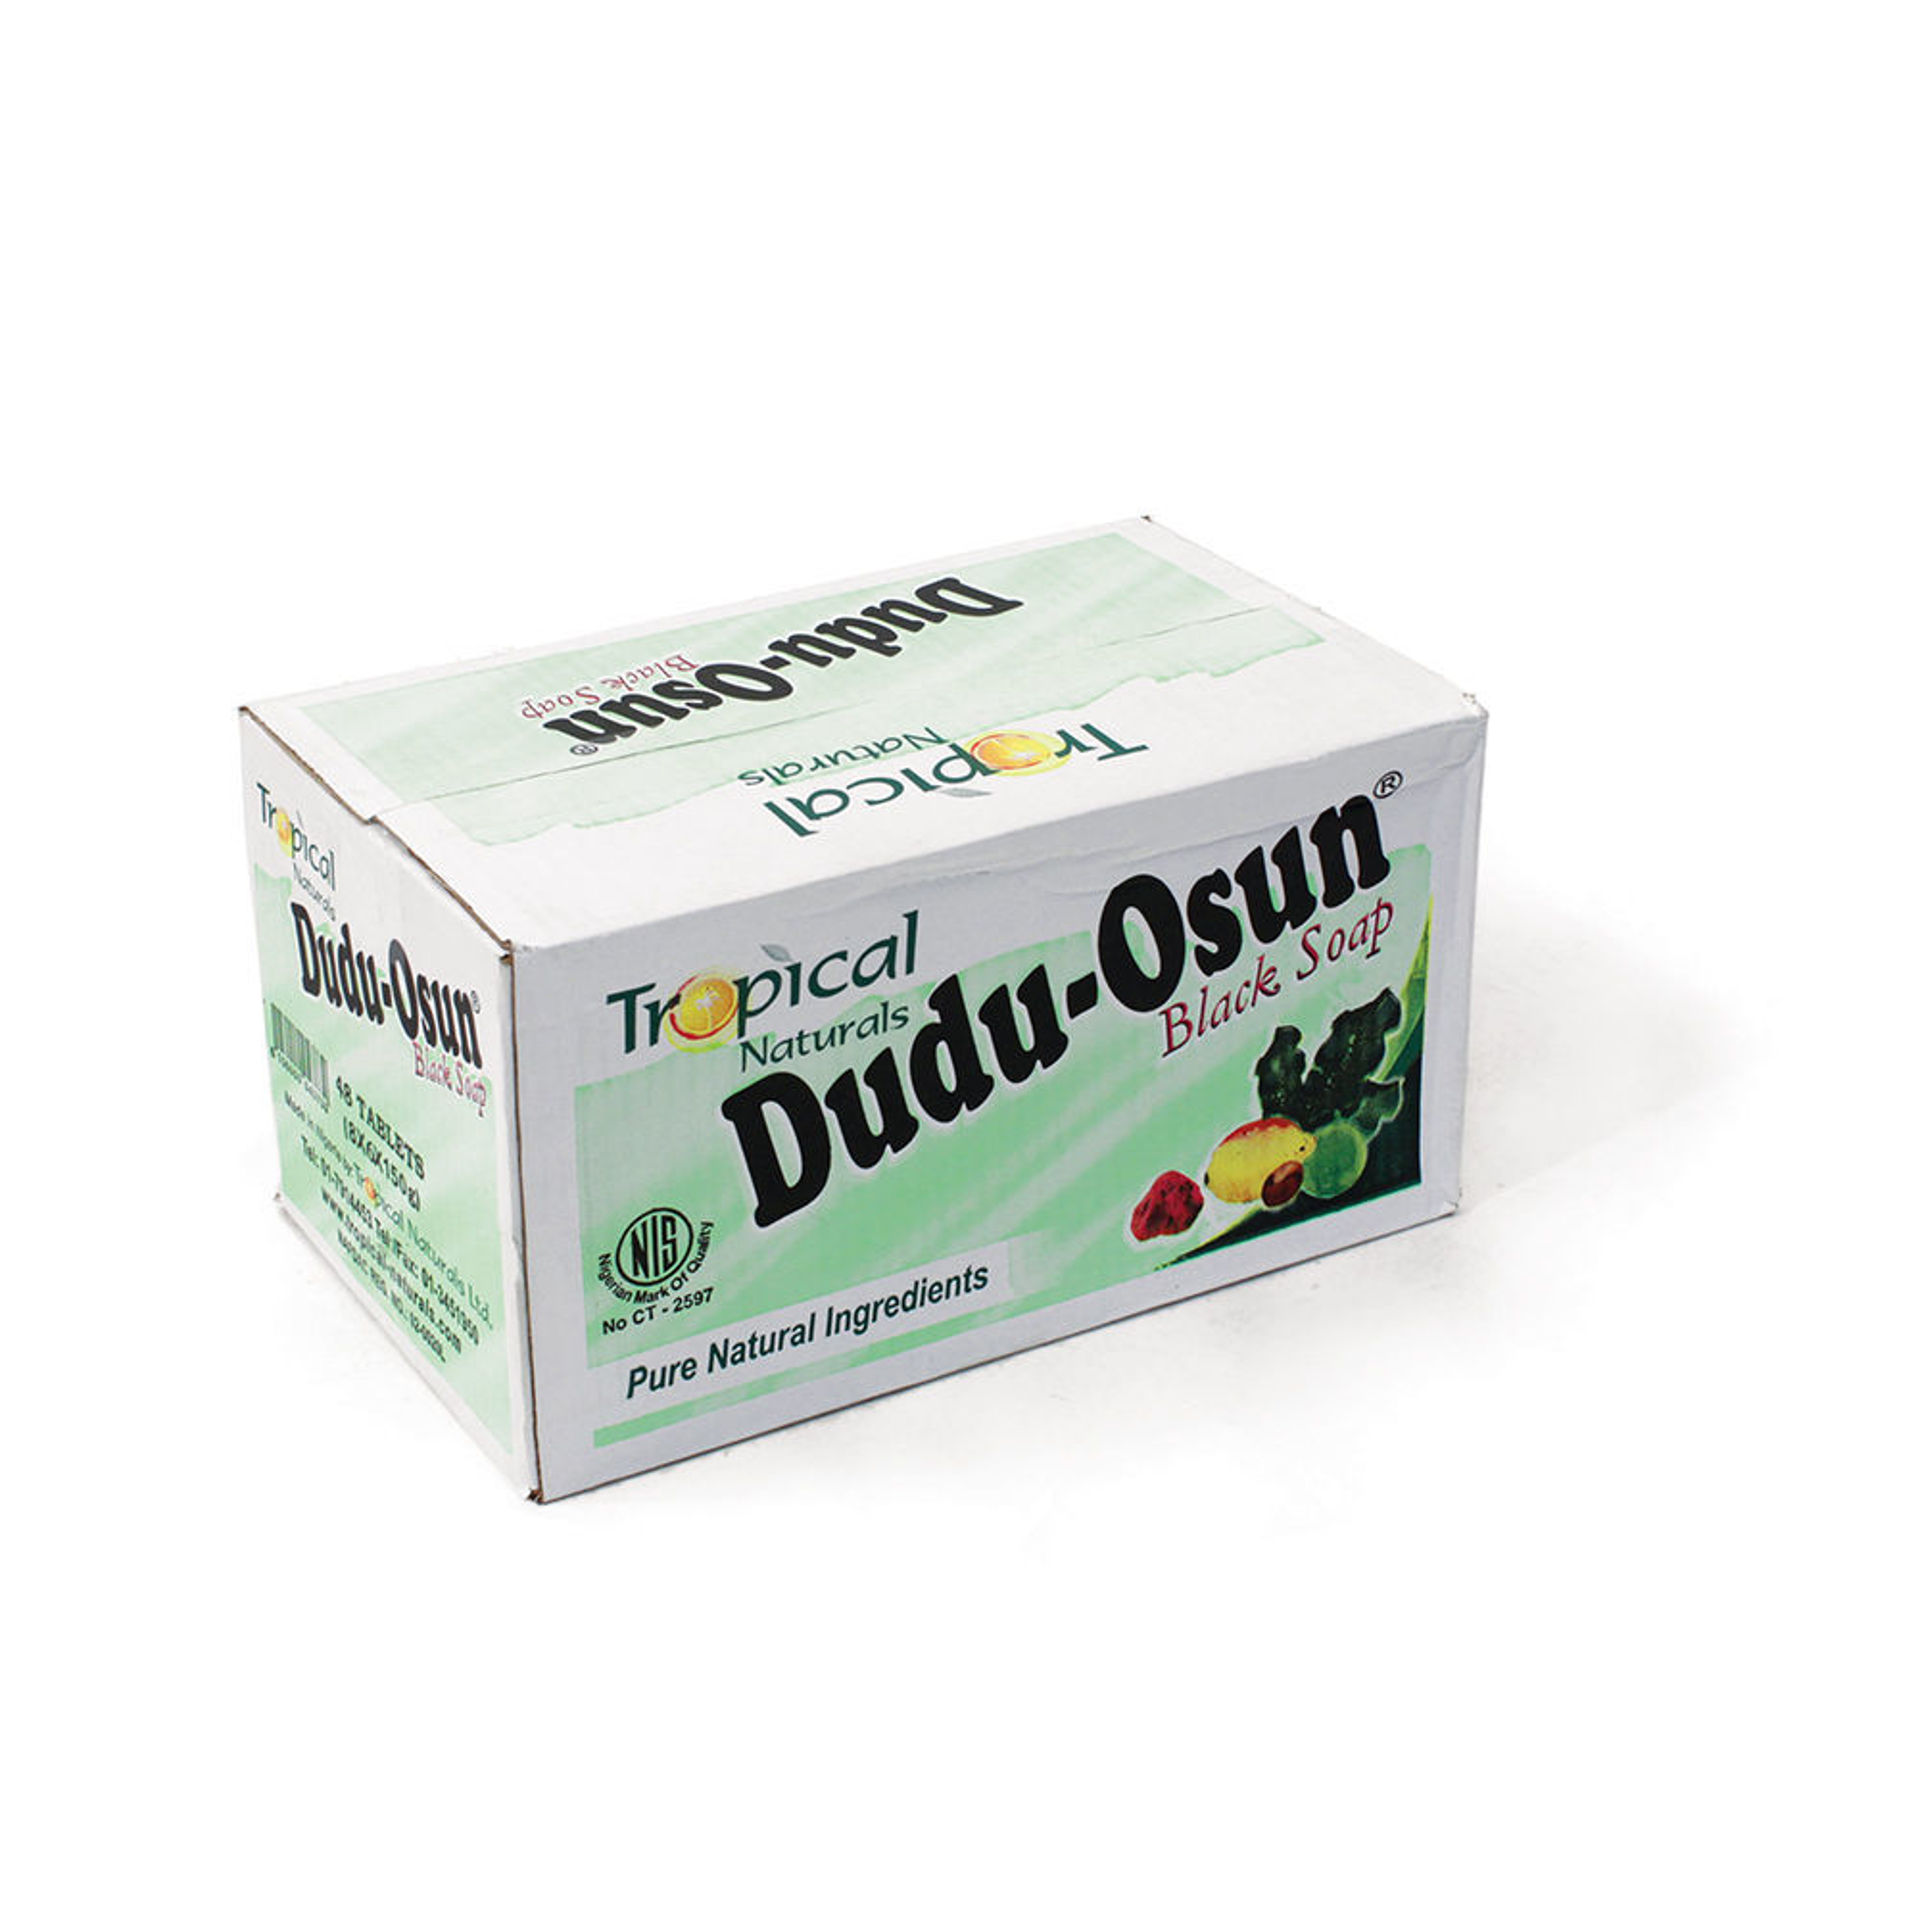 Picture of CLASSIC Dudu-Osun Black Soap - Case 48